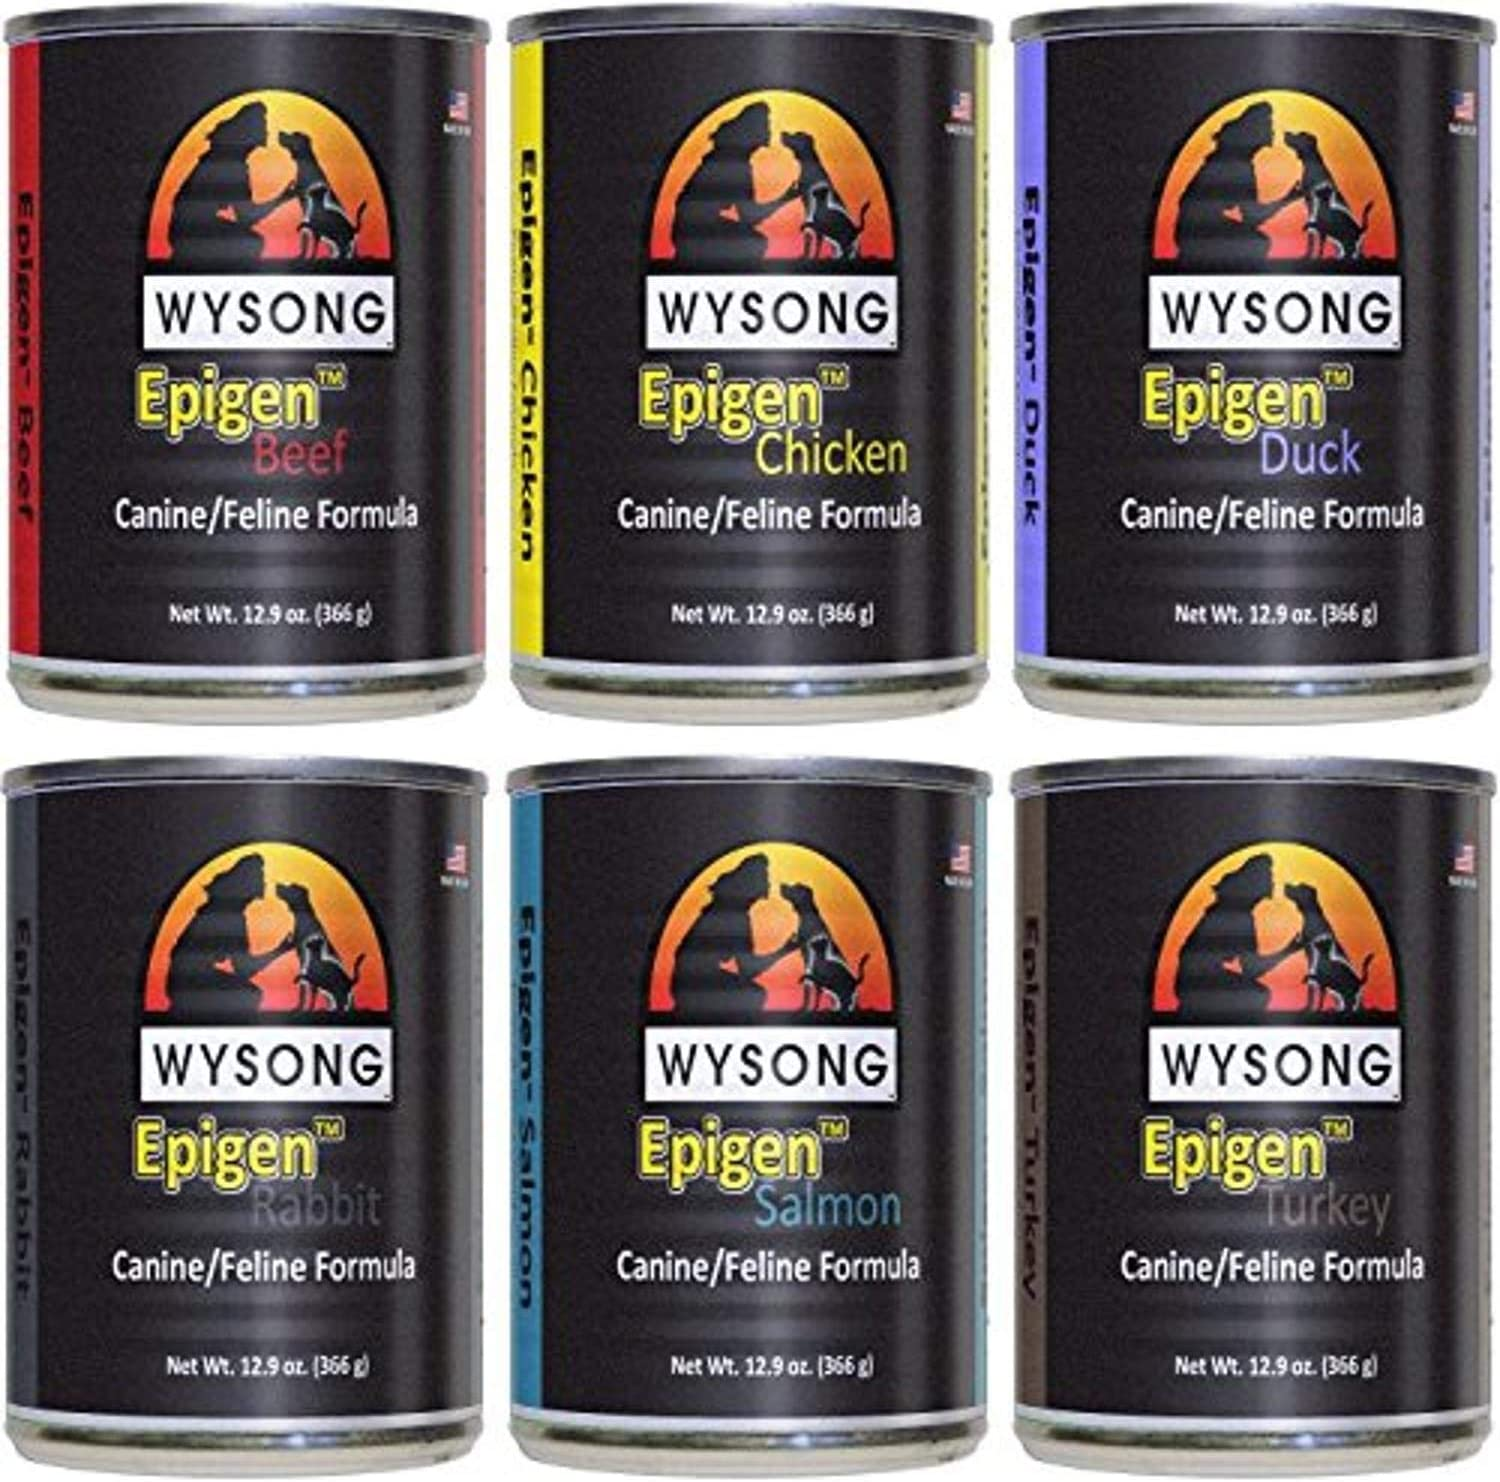 Wysong Epigen Variety Pack Canine/Feline Canned Formula - Dog/Cat/Ferret Food, Six- 12.9 Ounce Cans